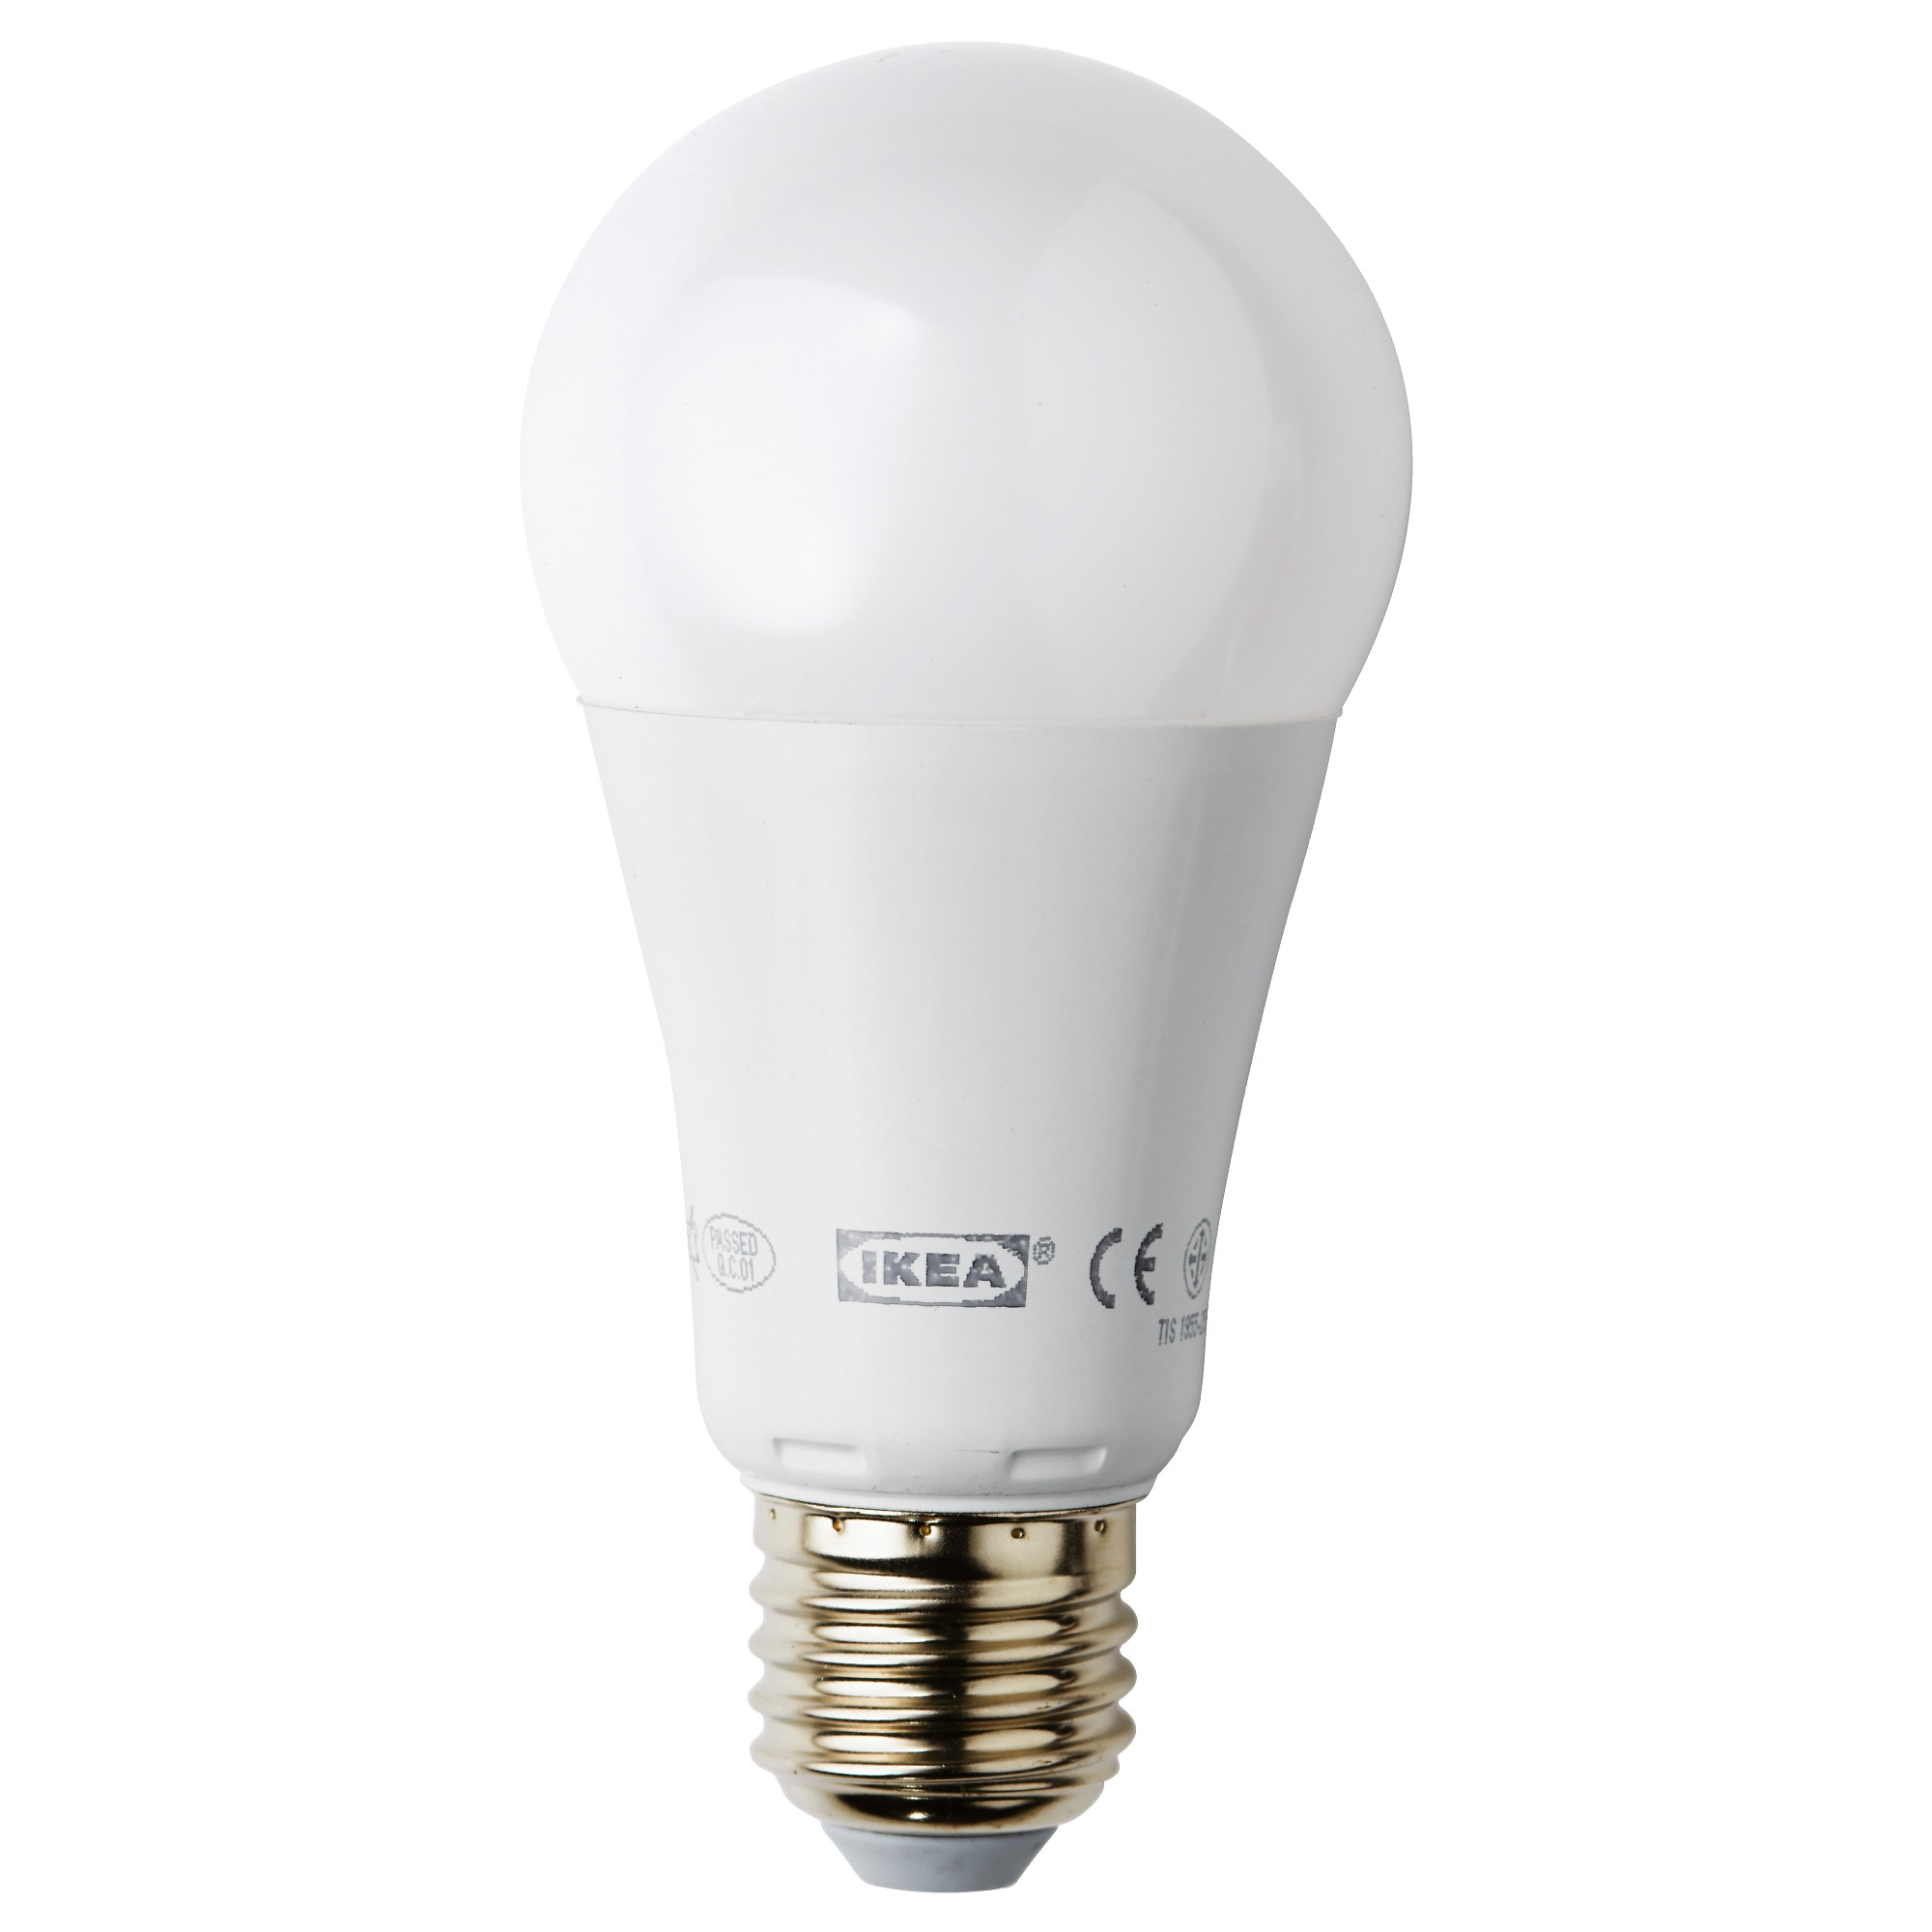 LED Light Bulbs - IKEA